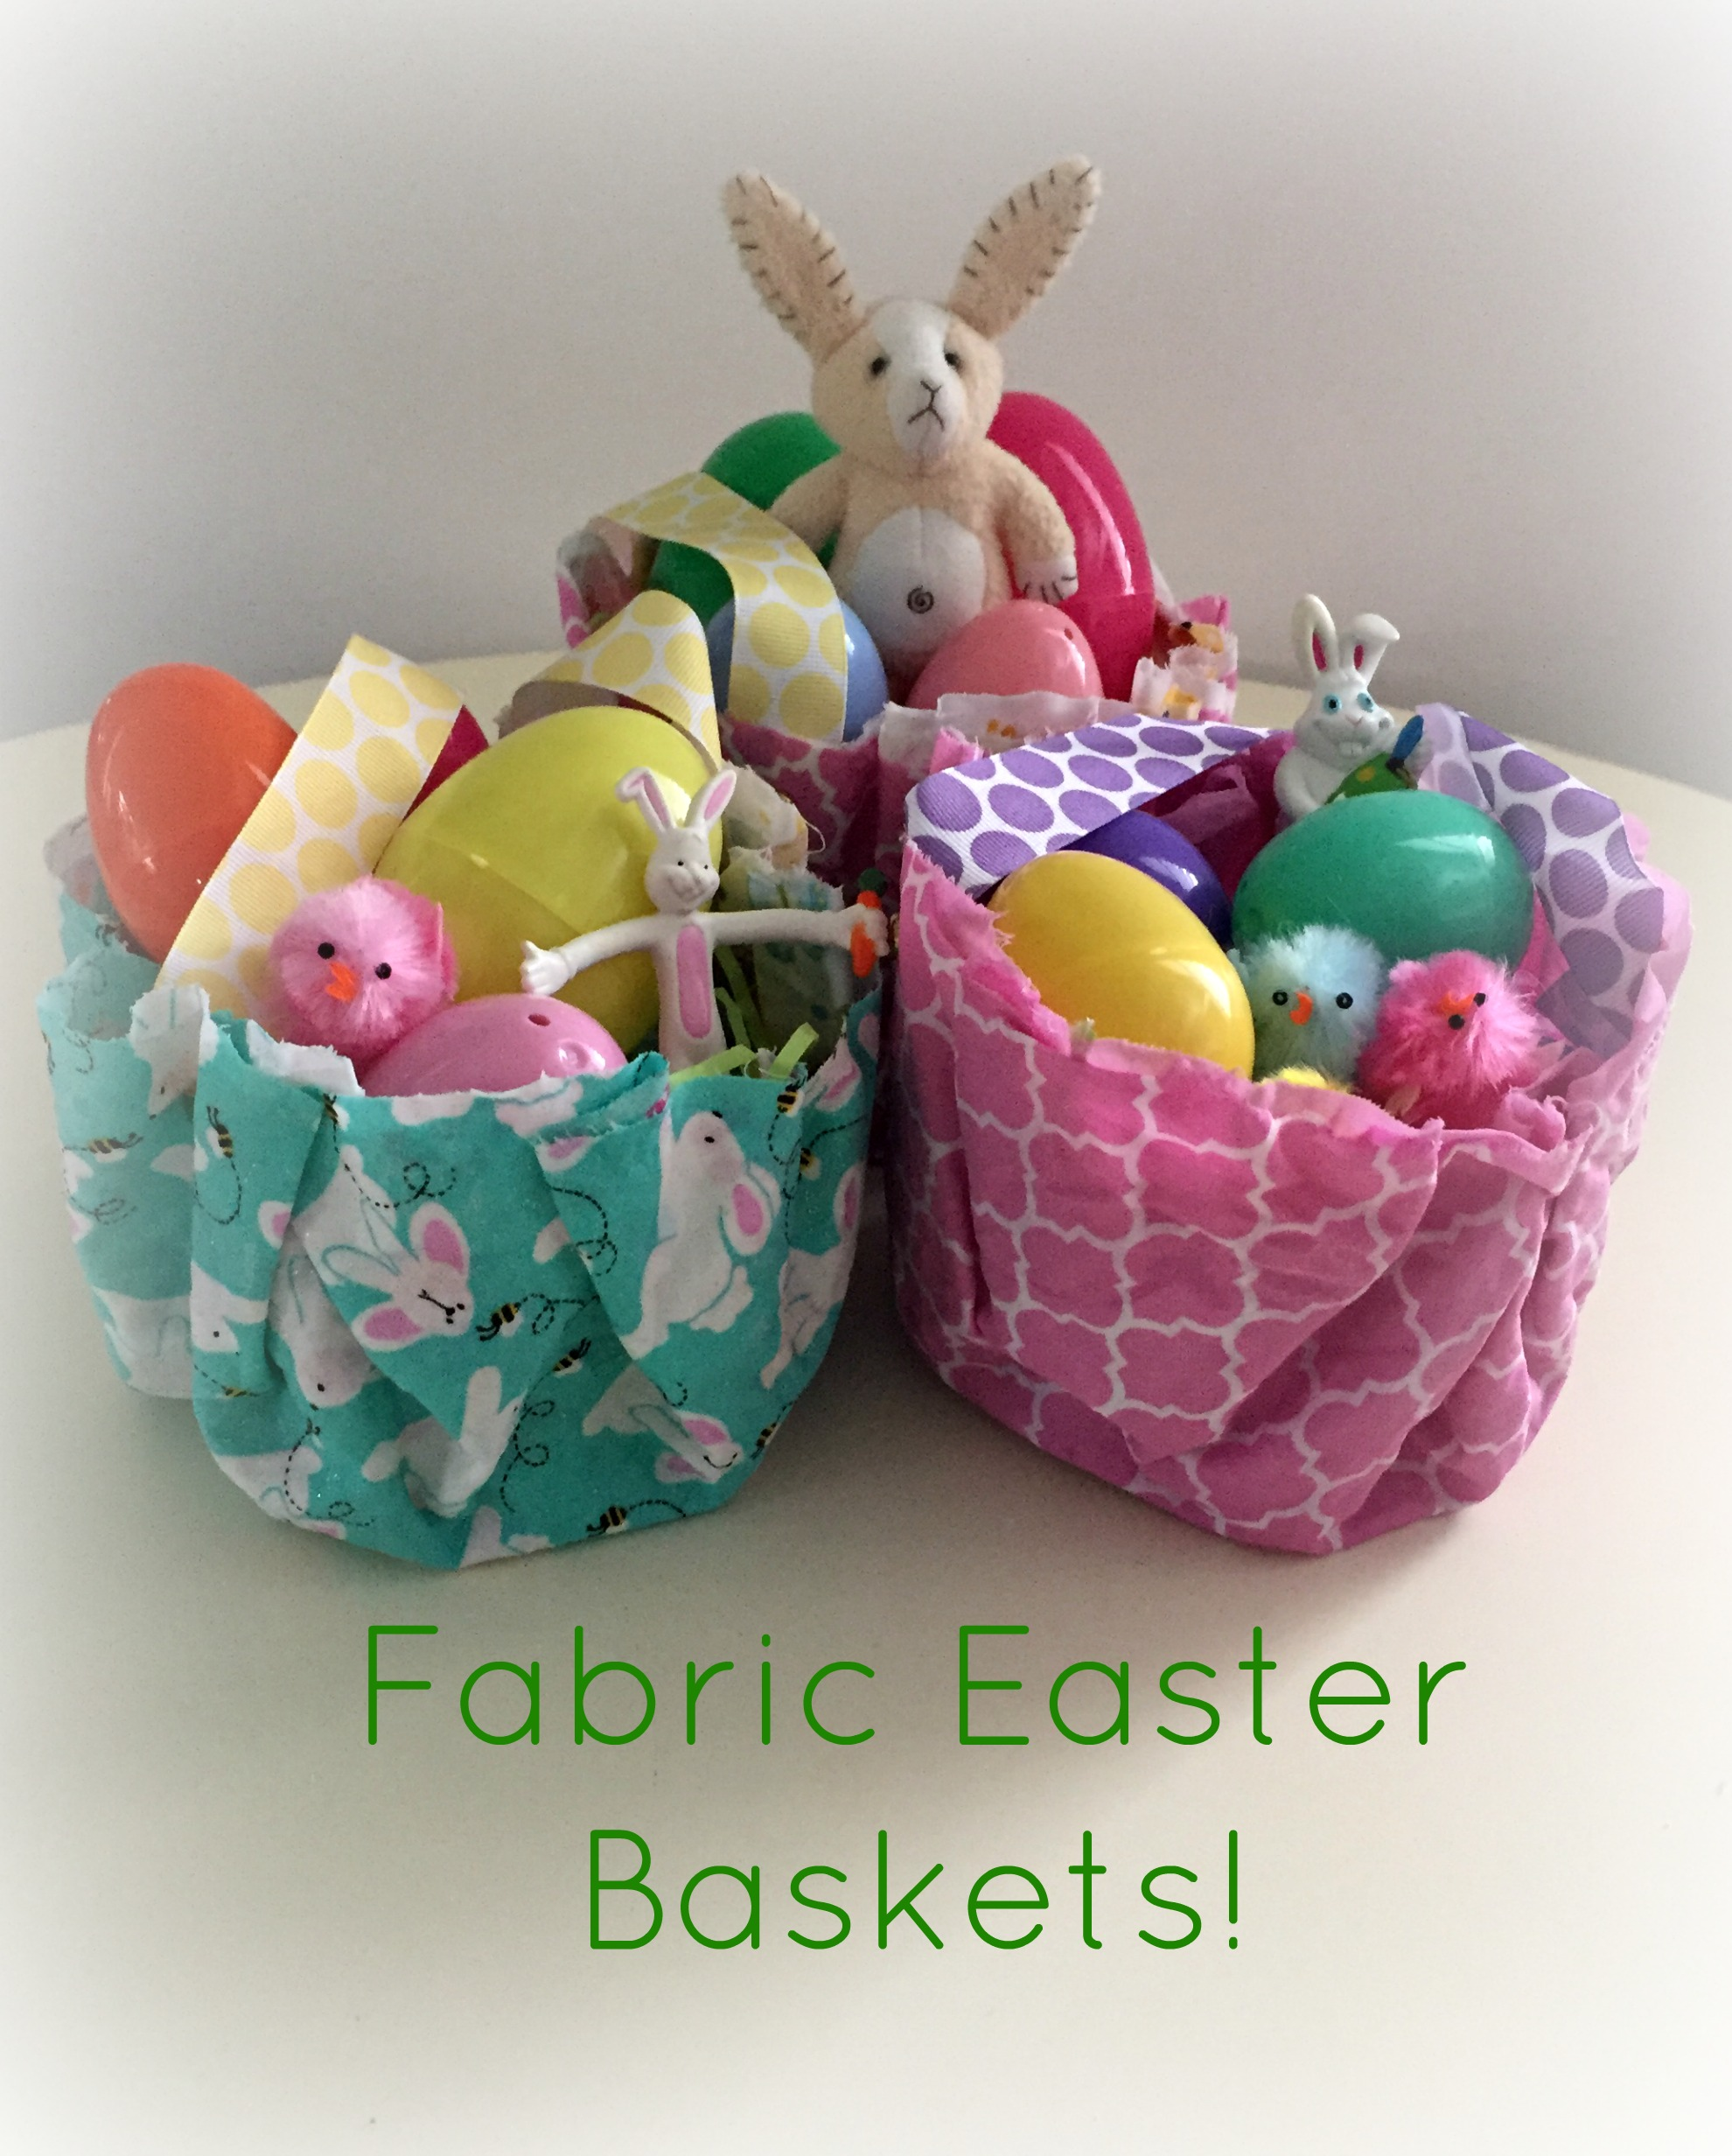 Fabric easter baskets ms stephanies preschool easter fun in the preschool classroom fabric easter baskets negle Image collections